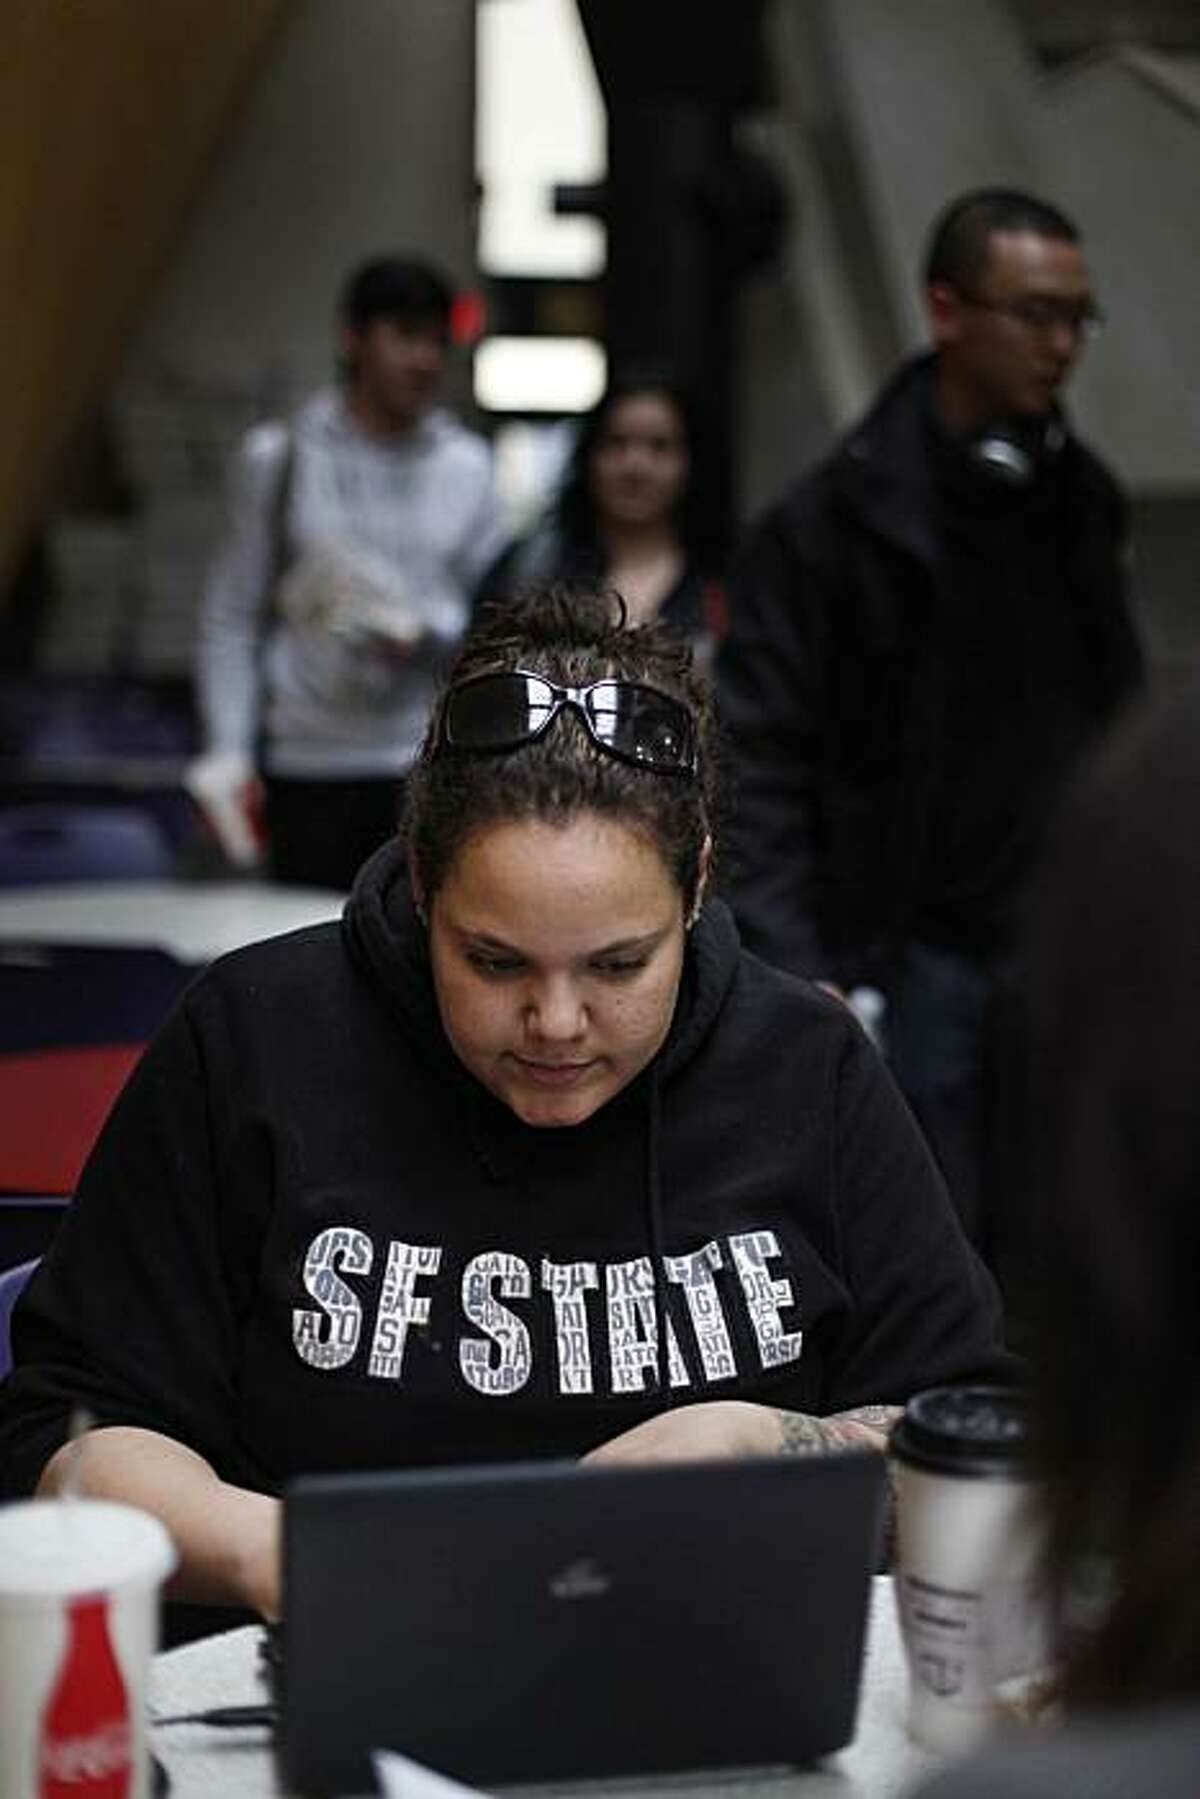 San Francisco State student Ellie Lieberman, 23, of Los Angeles, works on class in the student Center on Monday Feb. 14, 2011 in San Francisco, Calif. Lieberman said she isn't sure she's getting the education she's paid for and said,